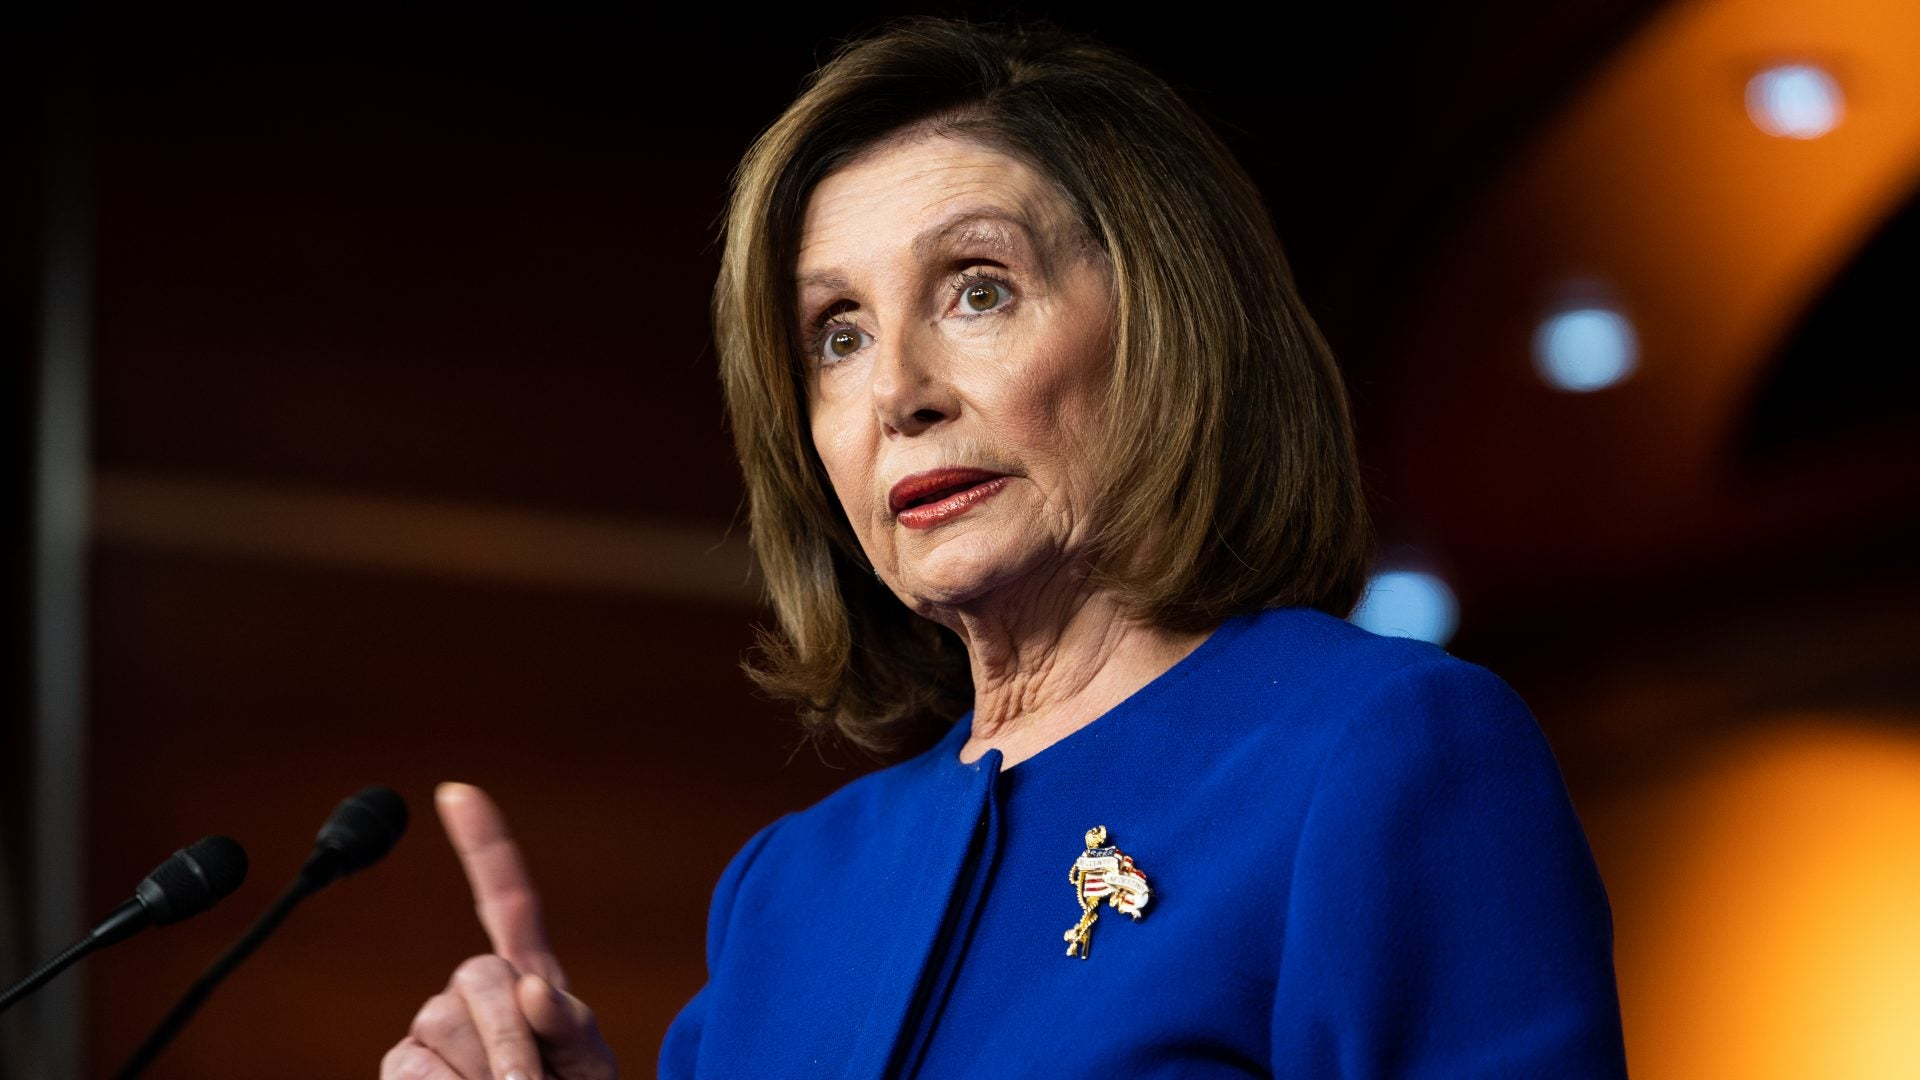 Nancy Pelosi Will Send Articles Of Impeachment When She's Good And Ready